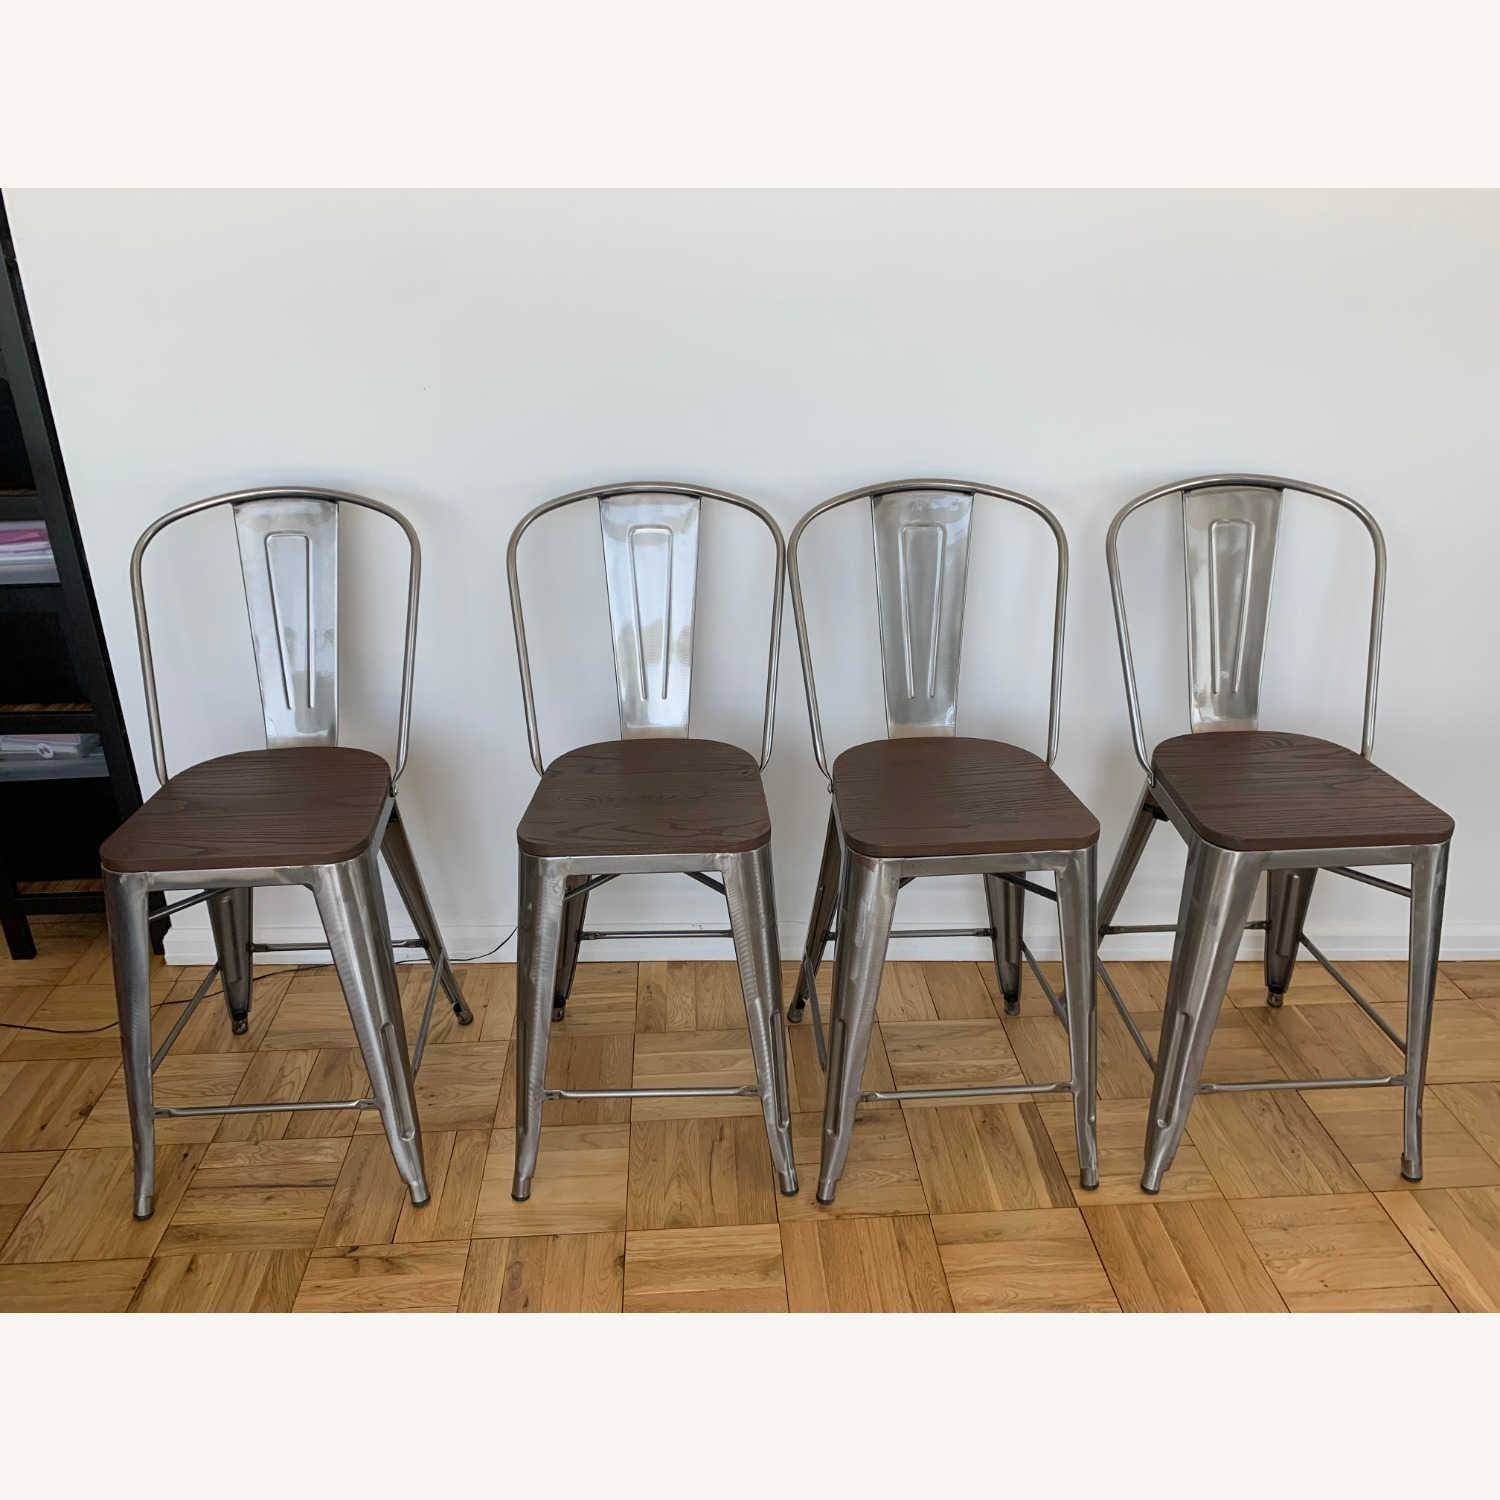 Il Loft Chairs for Counter Table - image-5